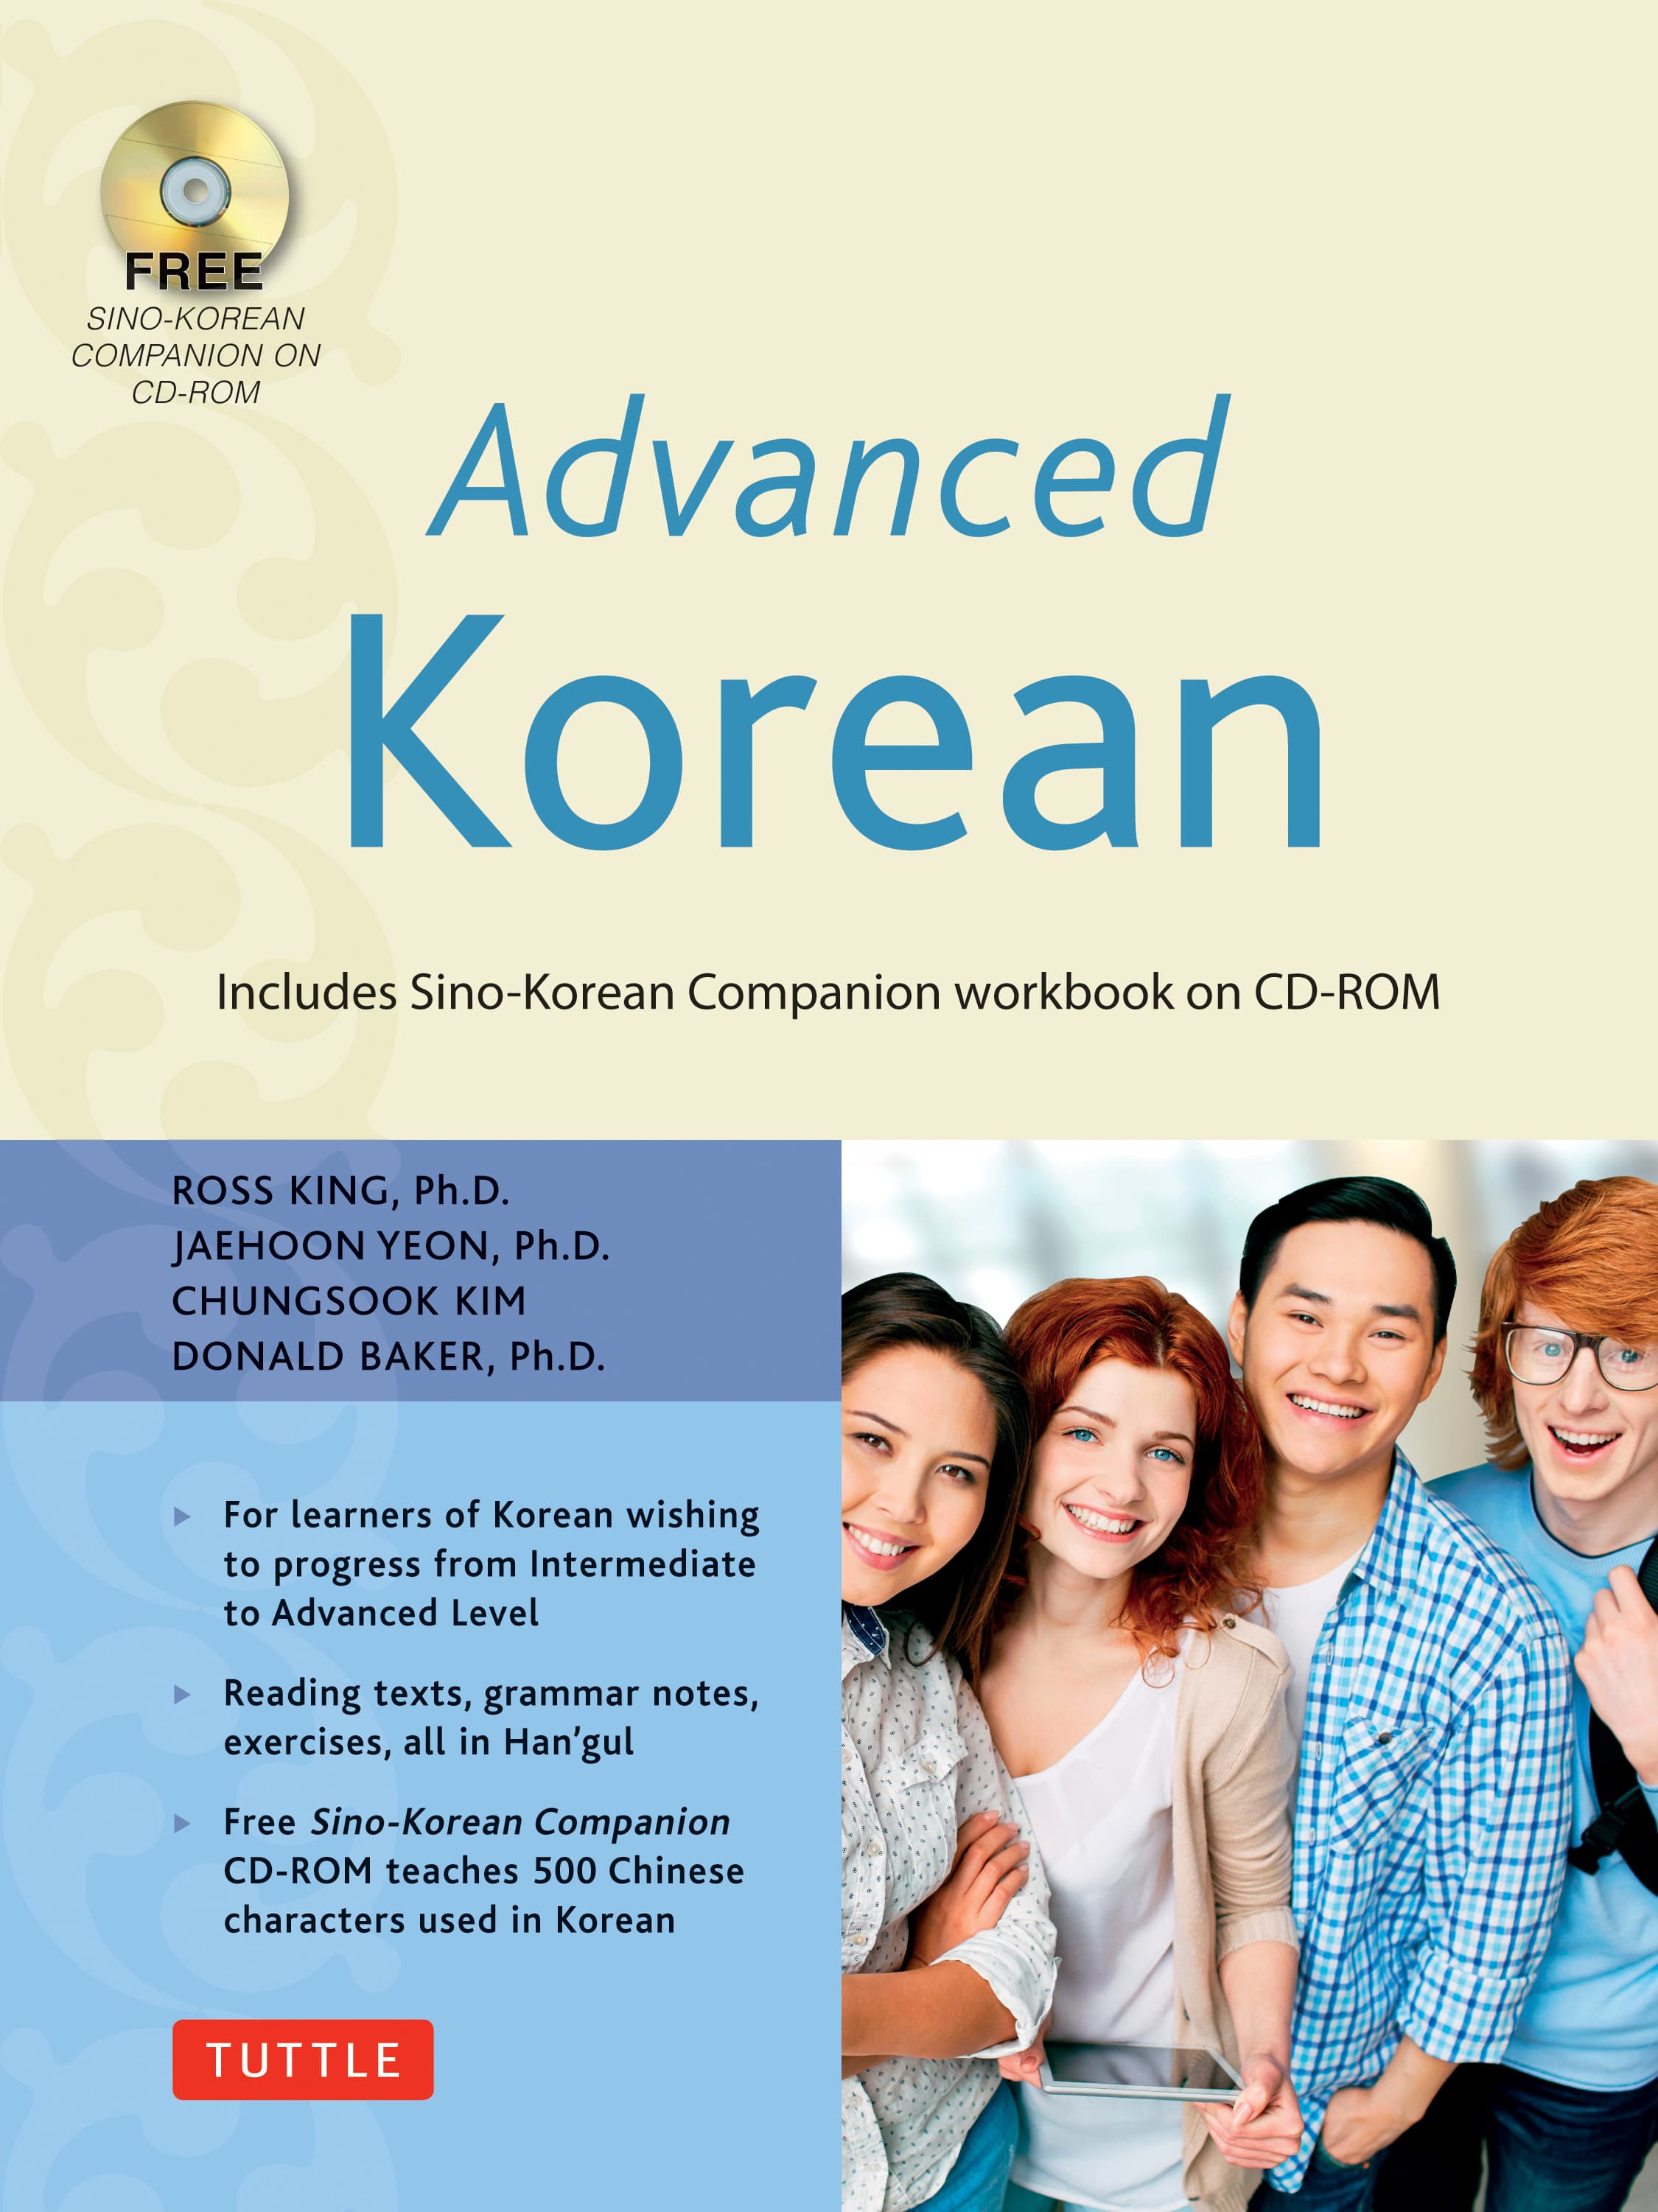 7 Advanced Korean Lessons Online For The Solo Learner